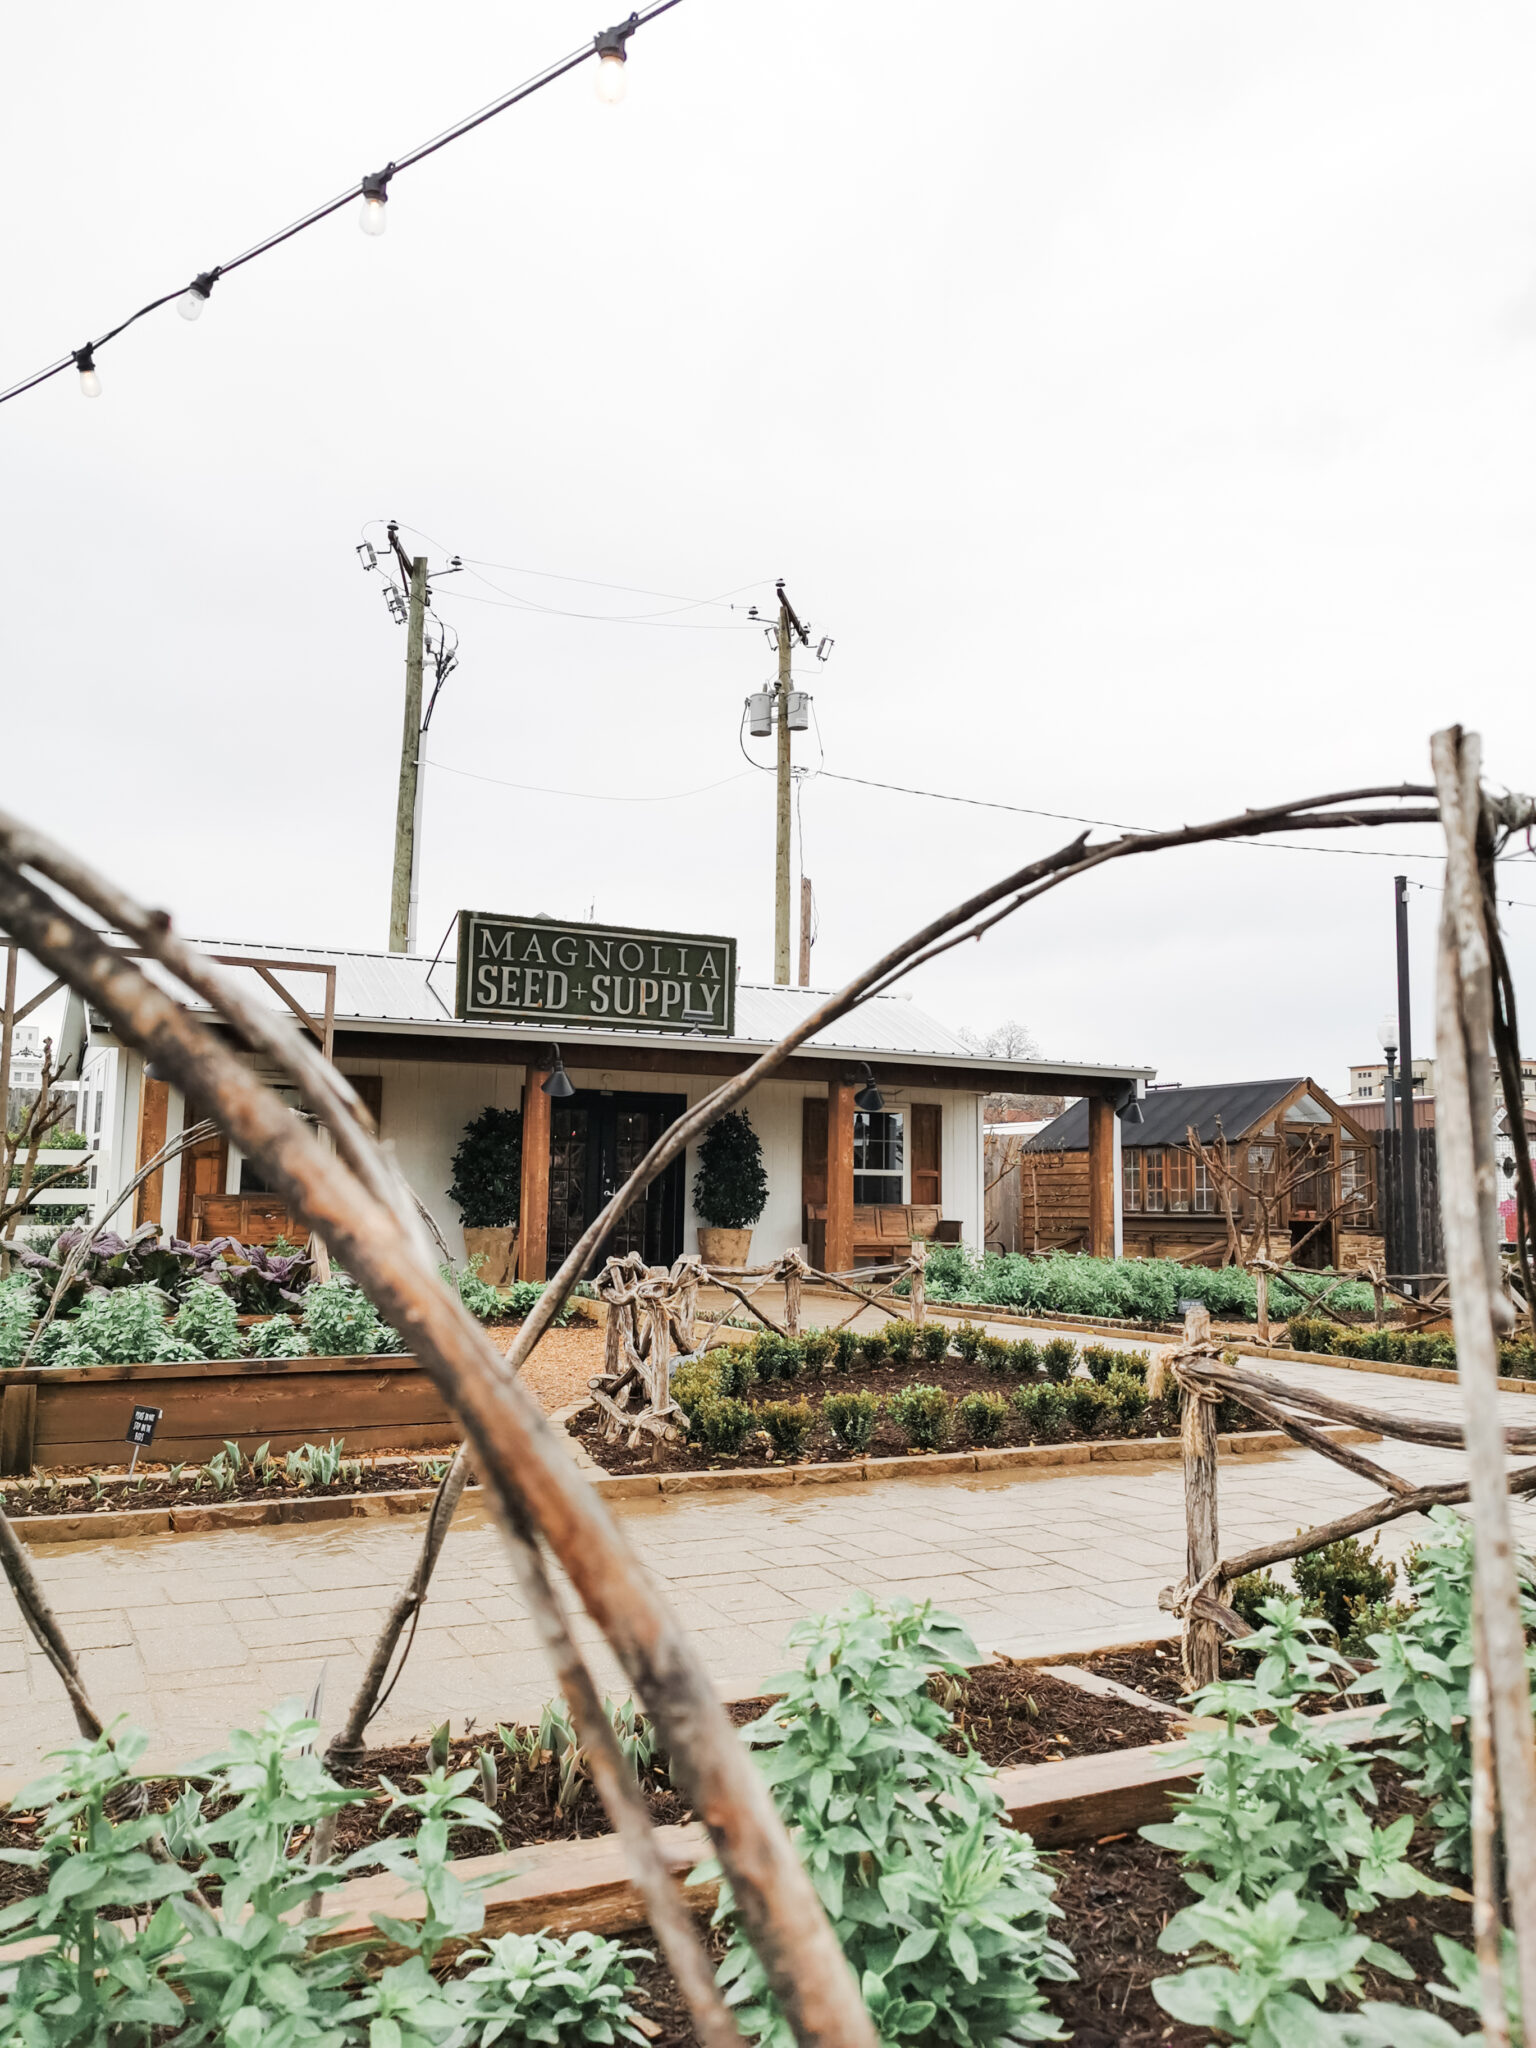 A glimpse of the Magnolia Seed + Supply and Joanna Gaines' garden.